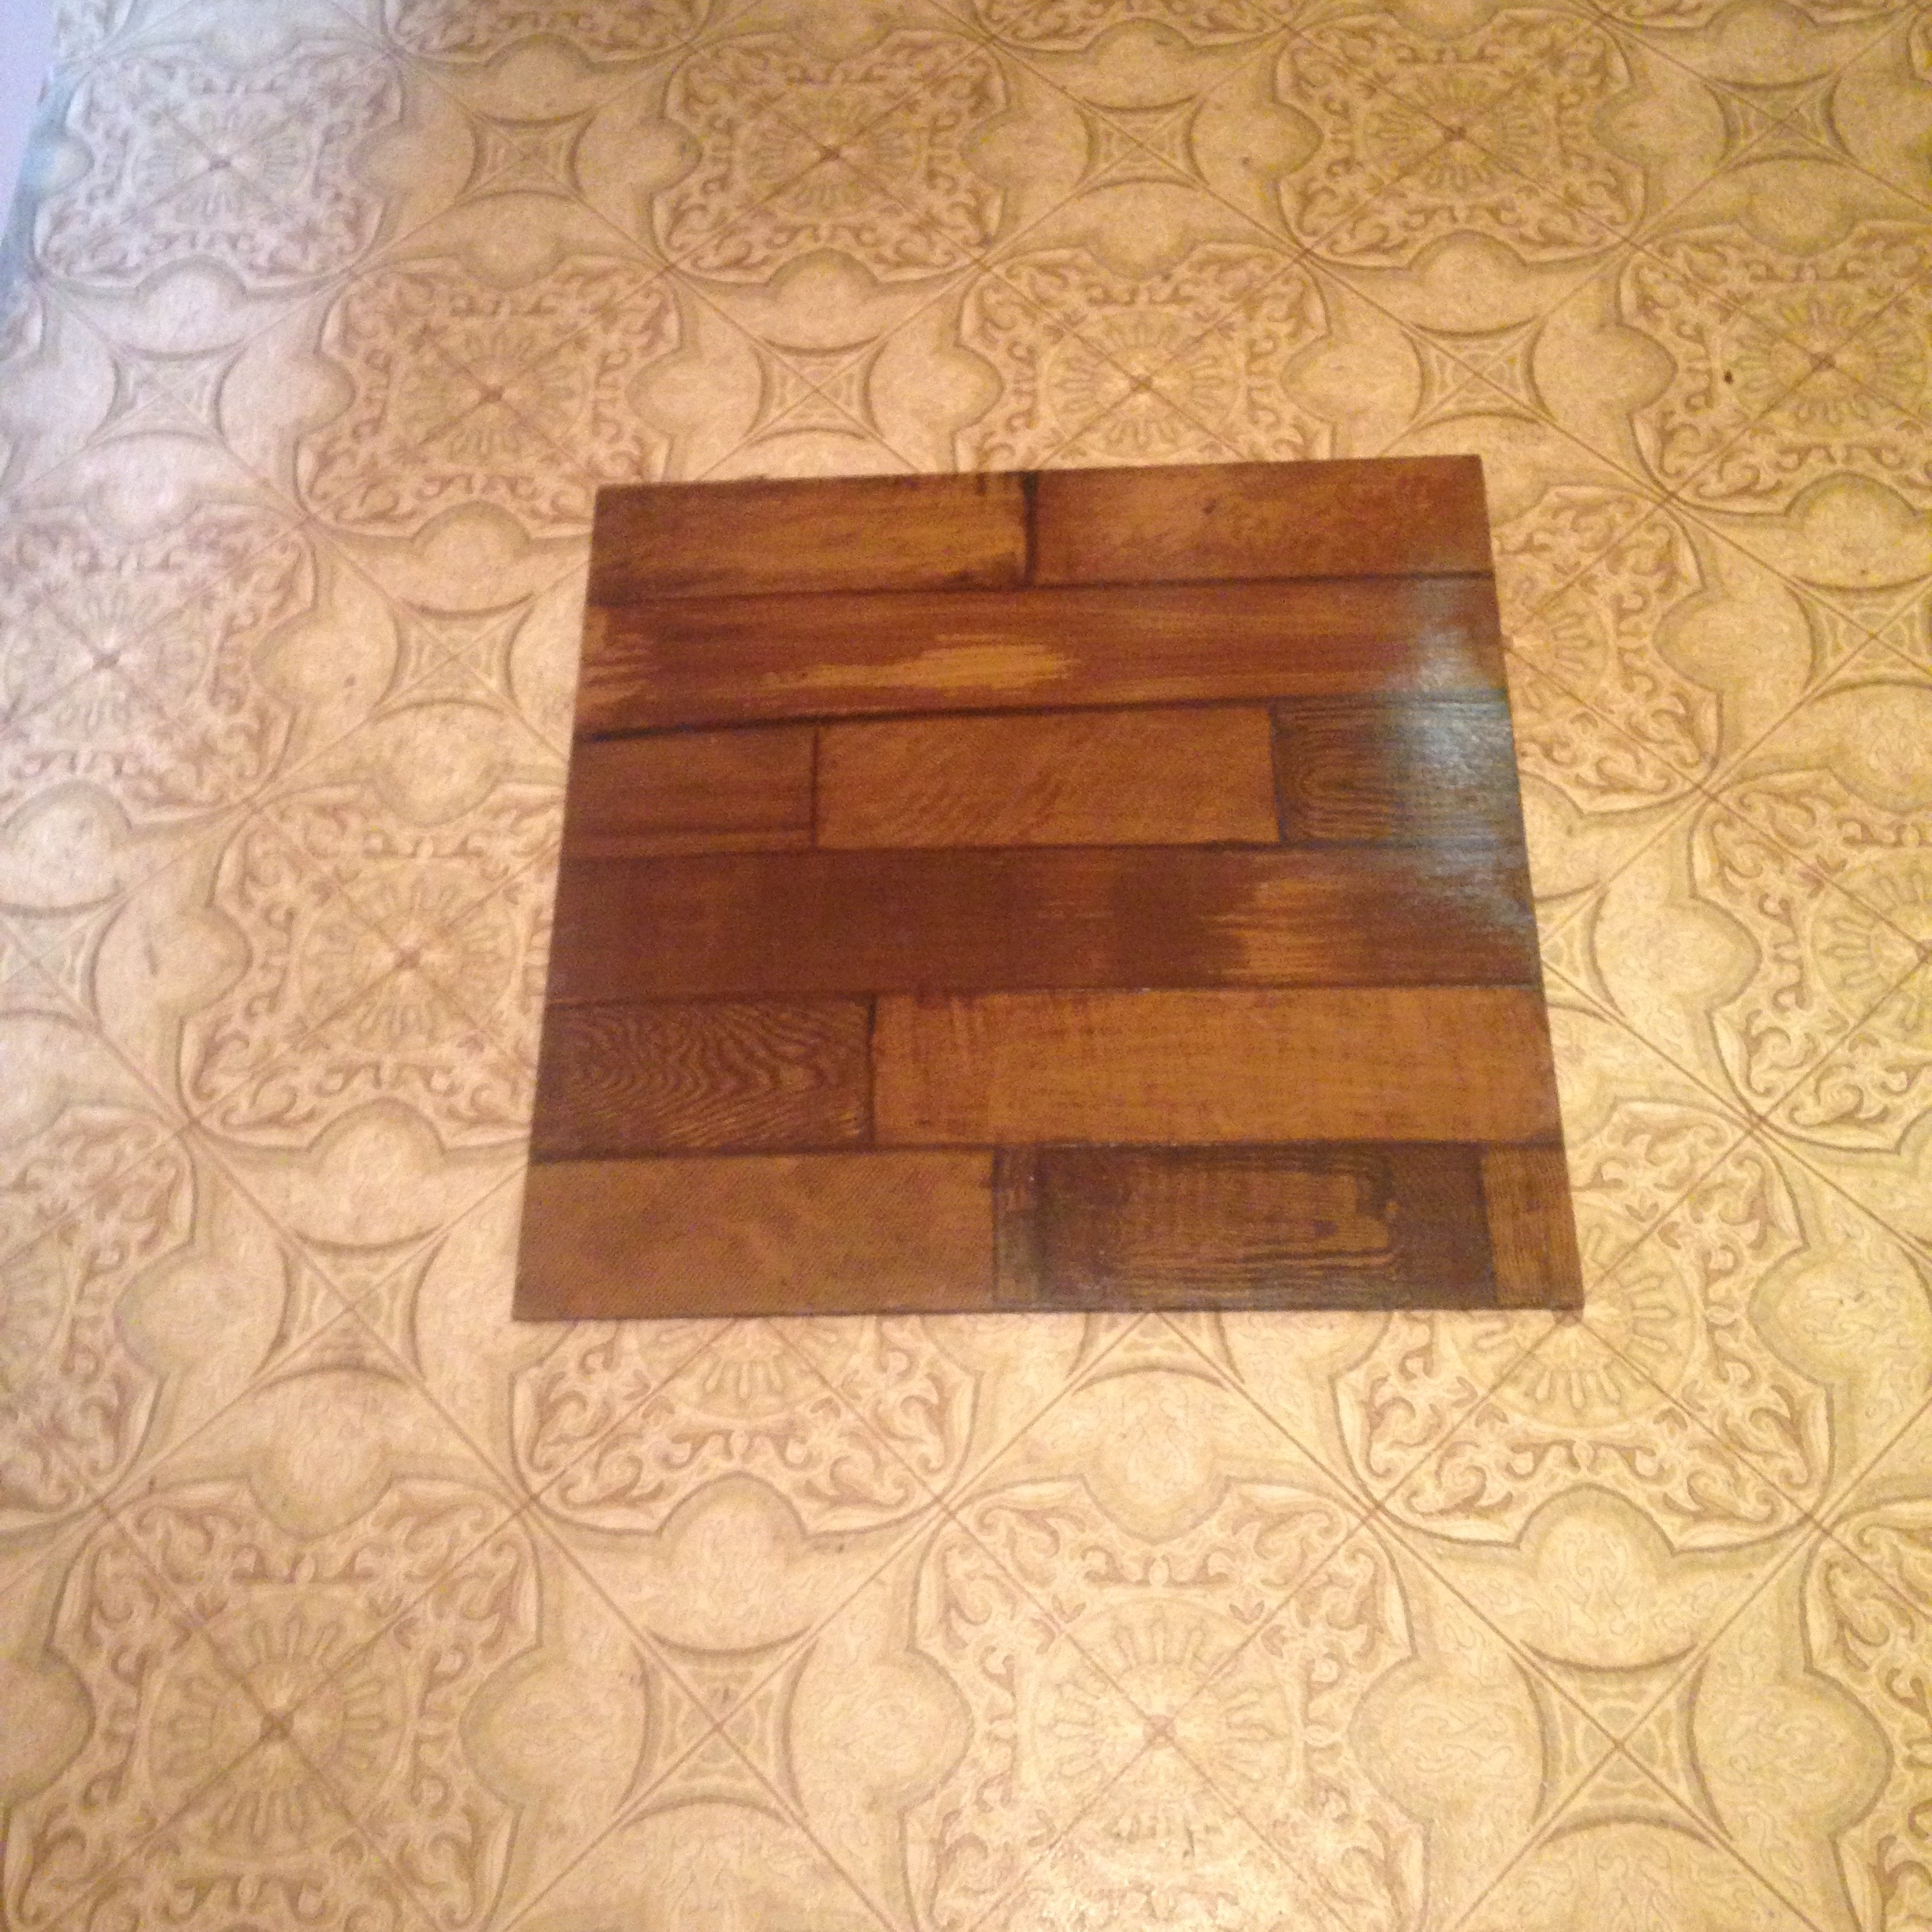 Feux wood grain floor